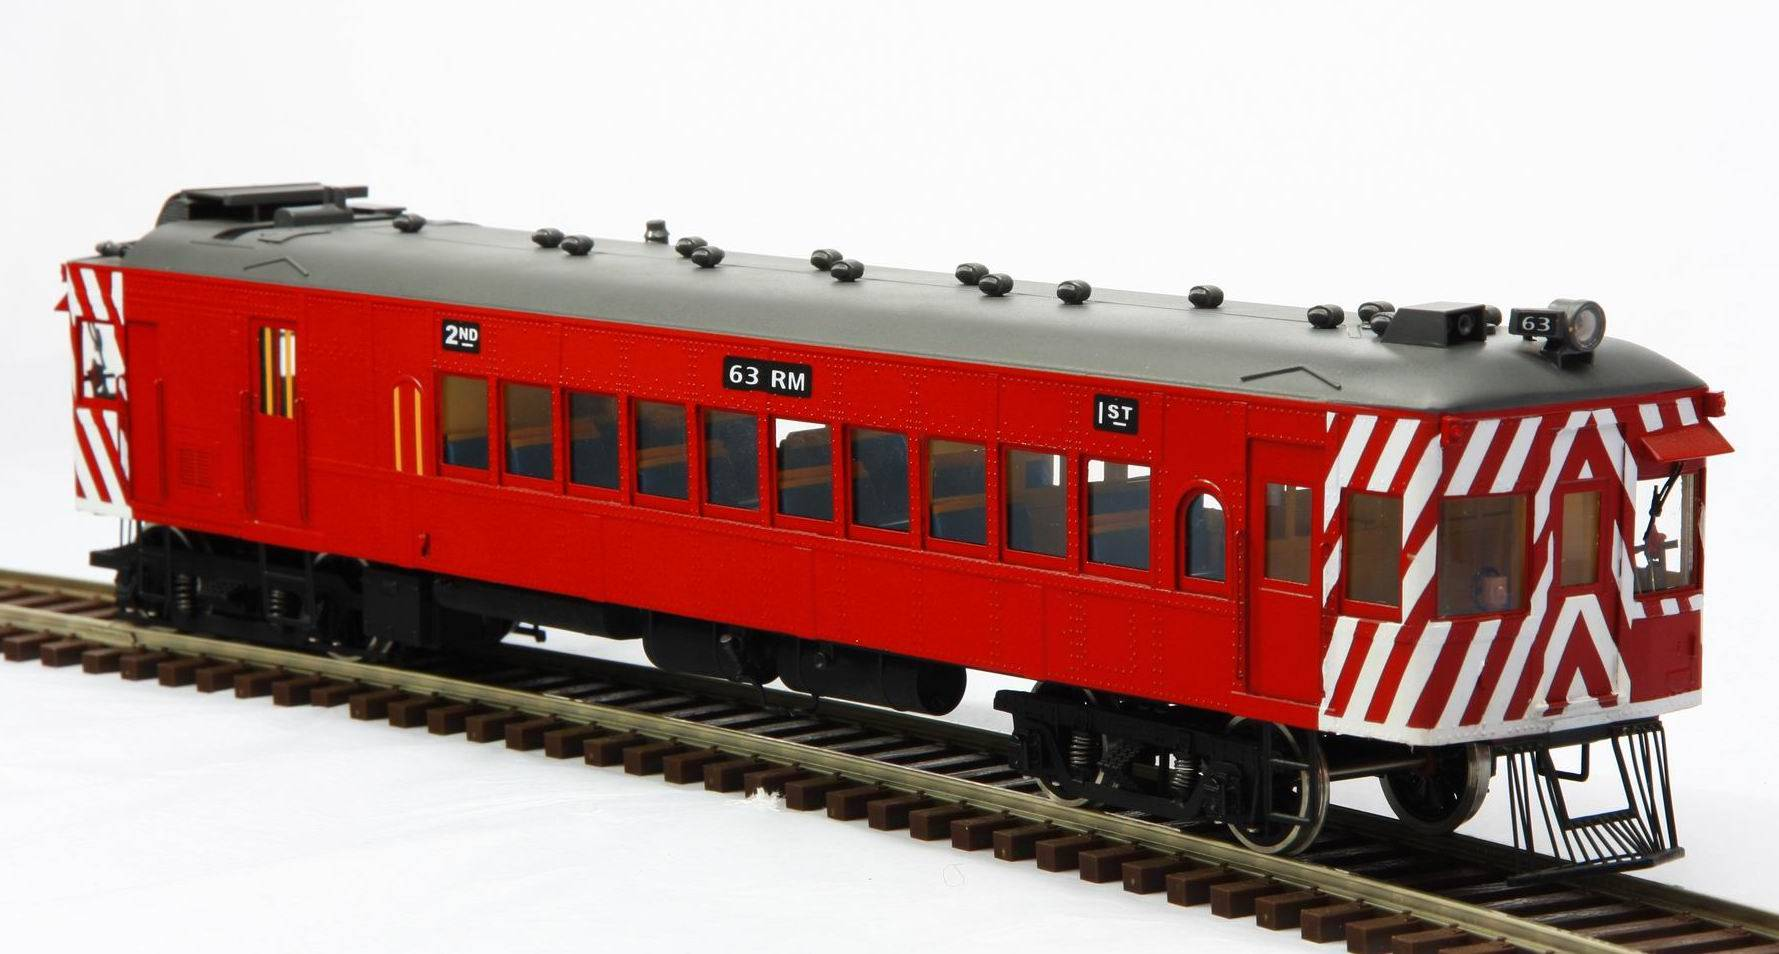 Collectable train toy - O Scale, brass material